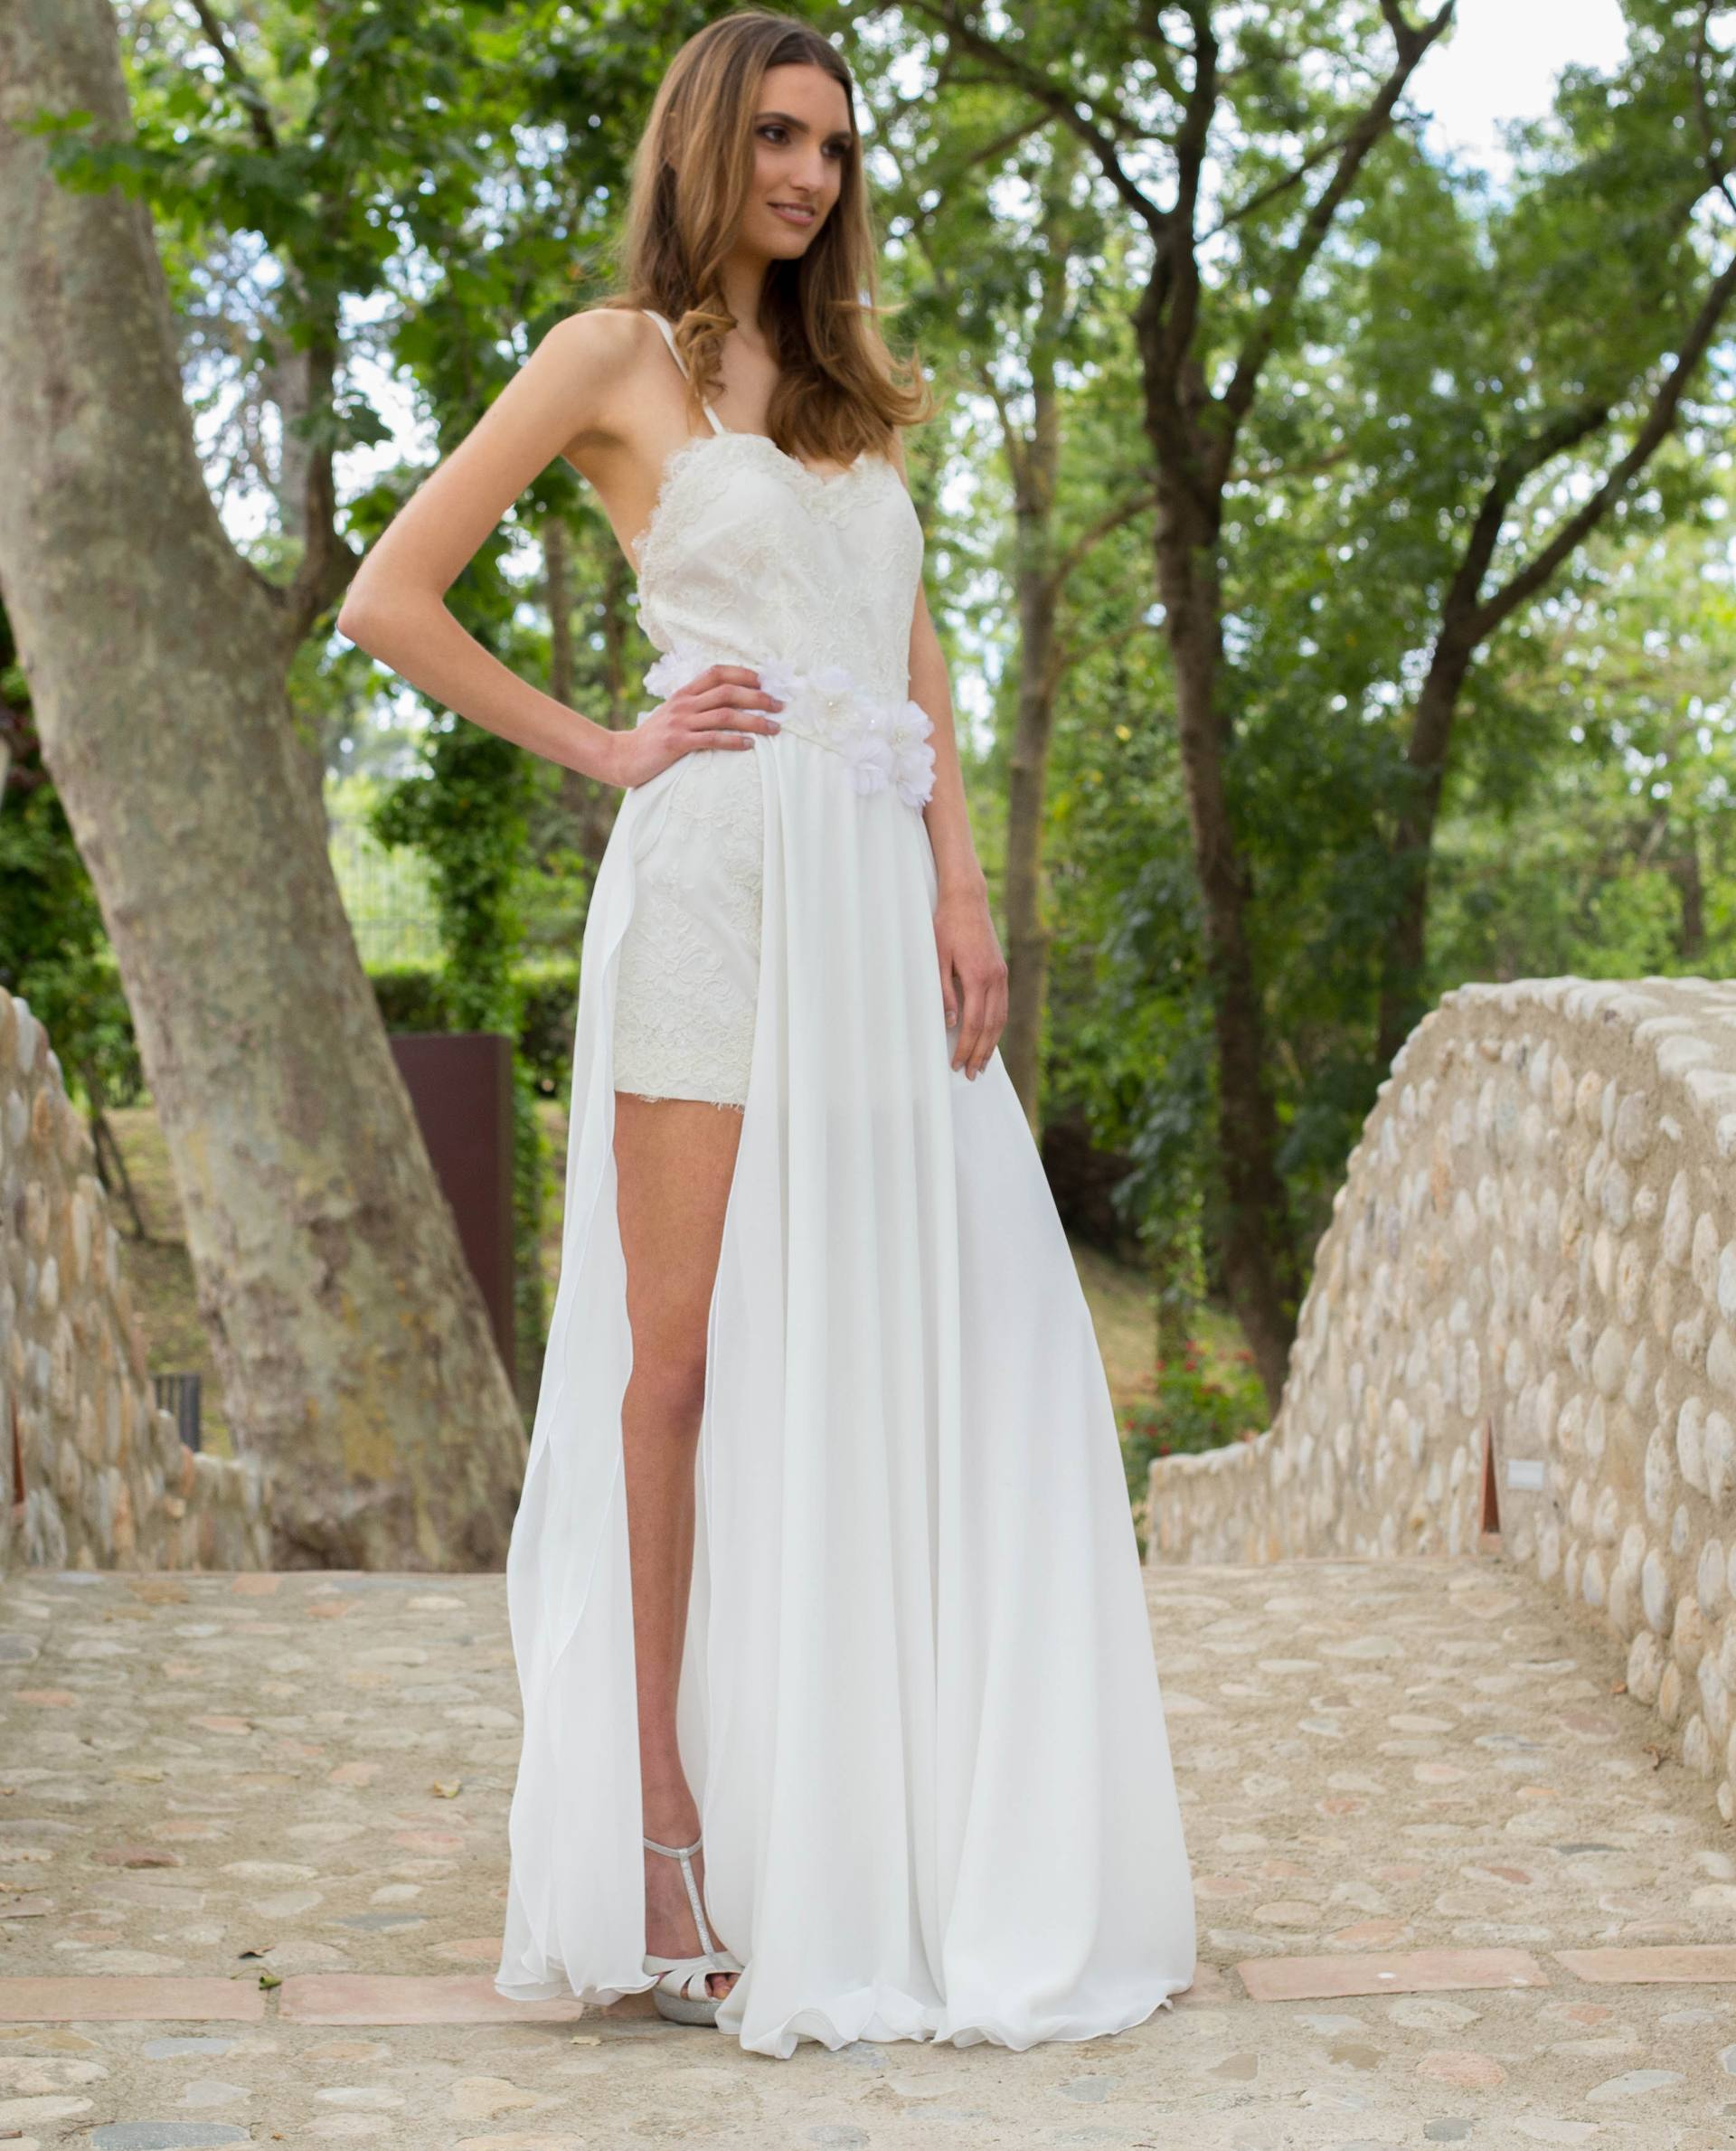 BRIDAL-NATURE 2019 - FALDAS - Falda novia Auril